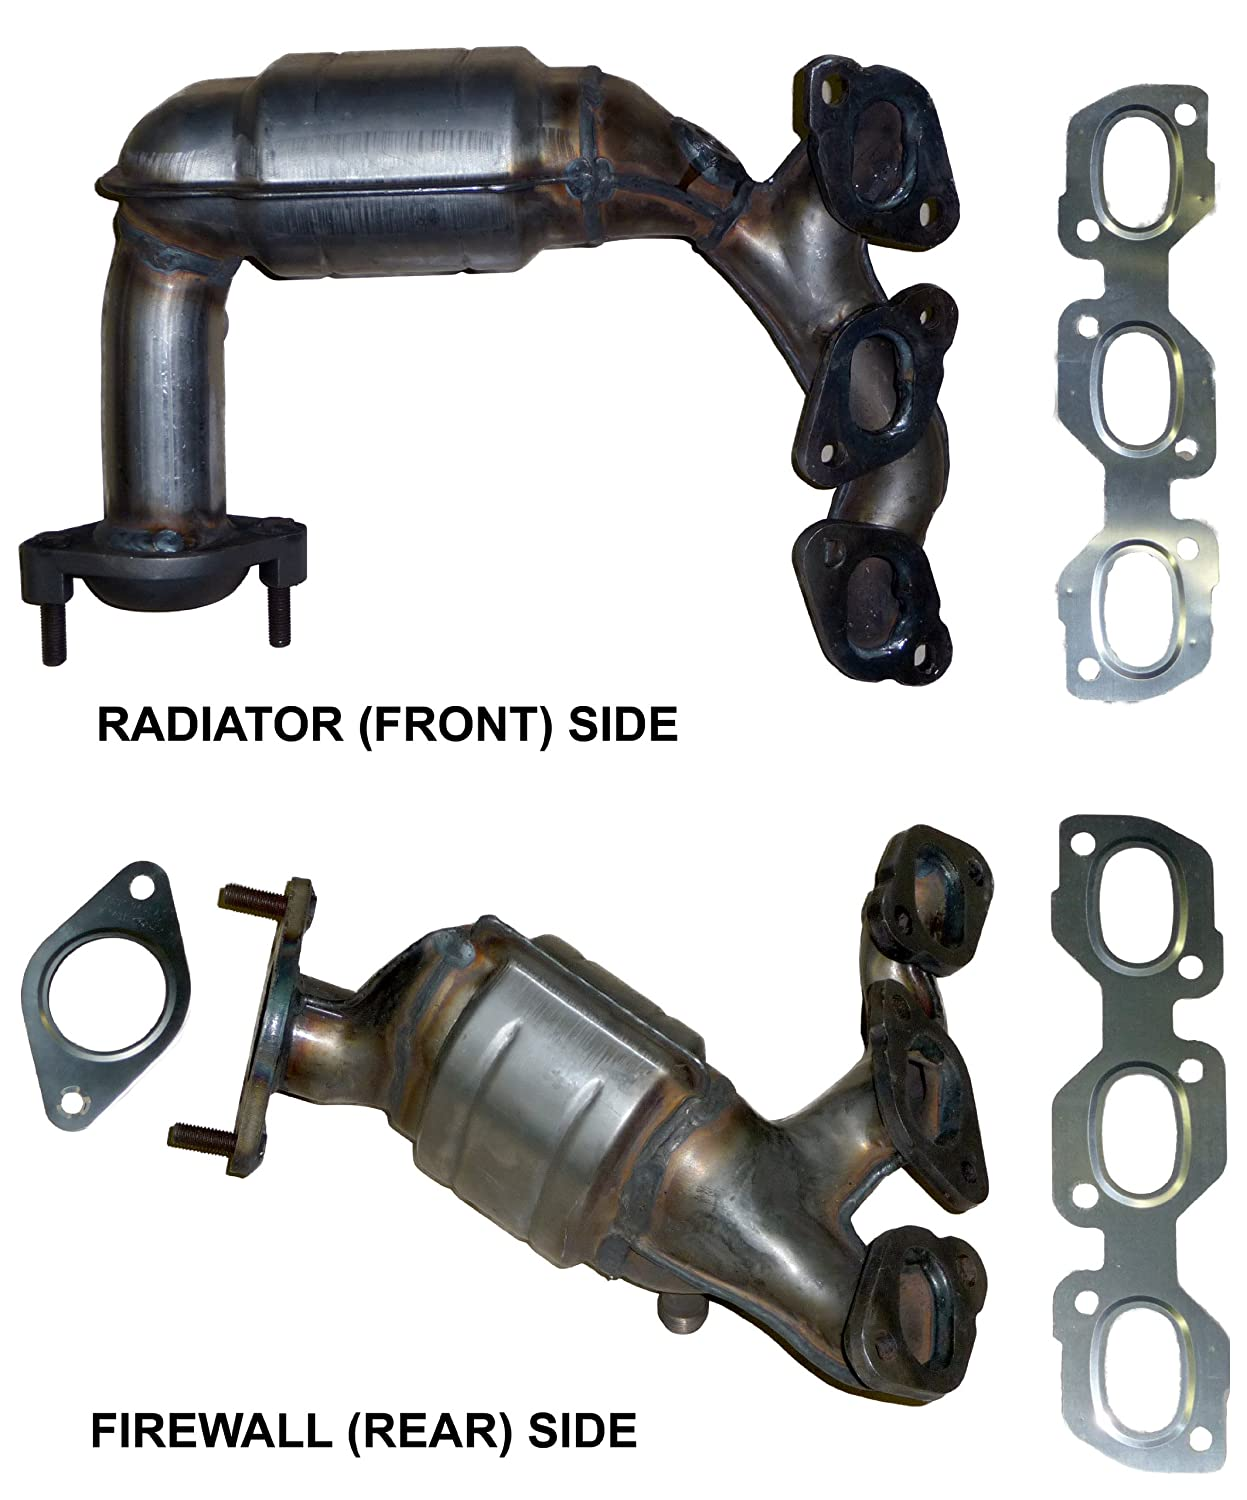 Diagram For 2003 Ford Escape Xlt Exhaust Block And Schematic 2004 F 150 Catalytic Converter Amazon Com 2002 3 0 V6 Manifold Rh